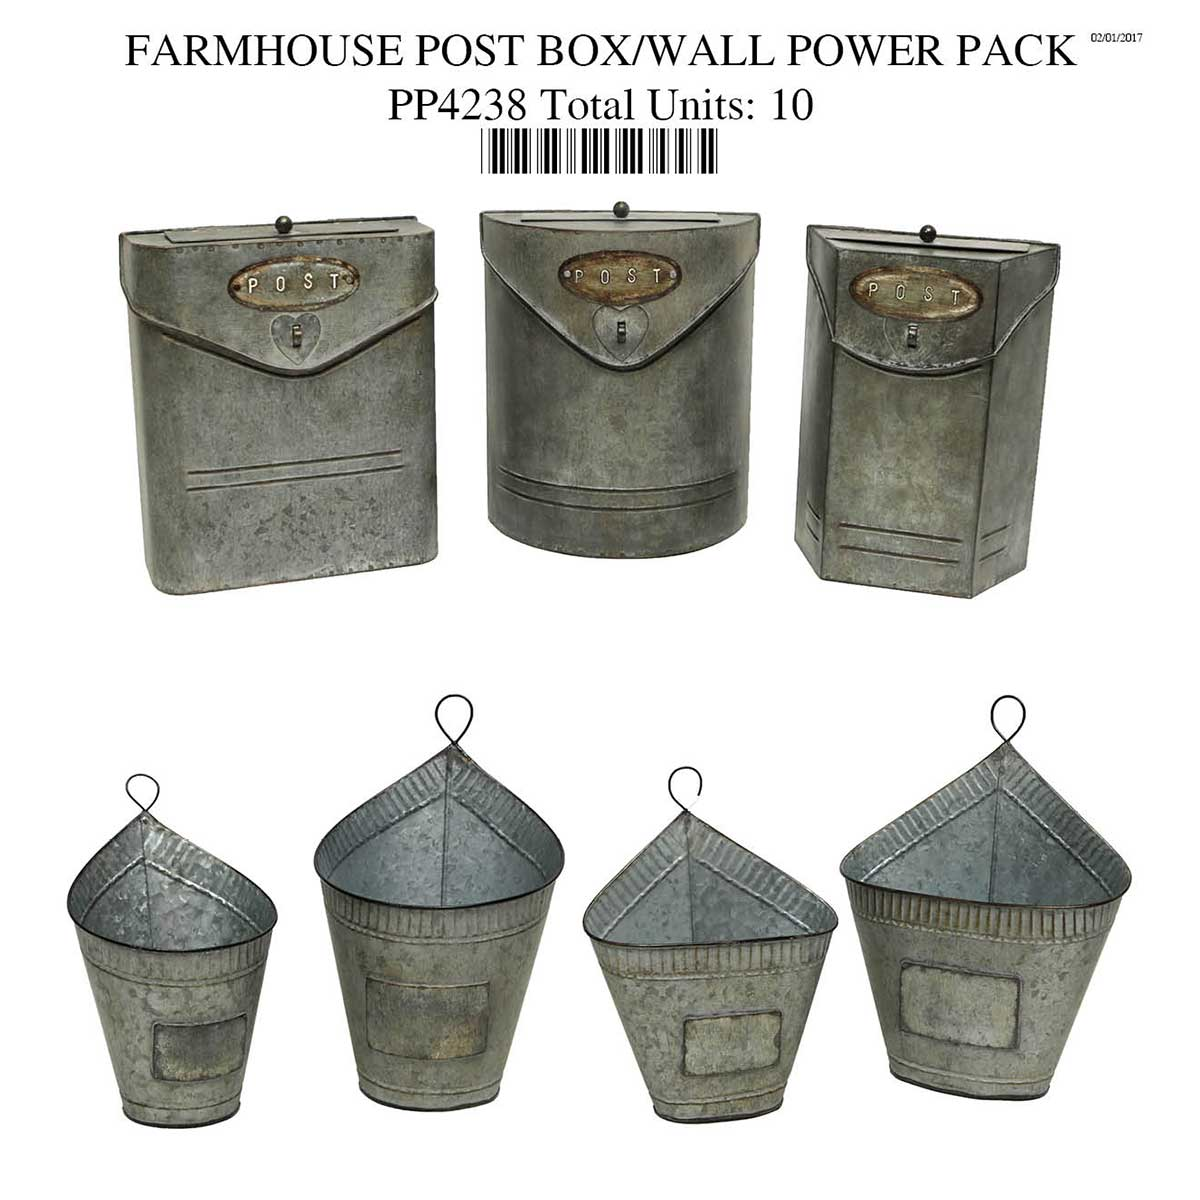 FARMHOUSE POST BOX/WALL COLLECTION POWER PACK 10 units PP4238